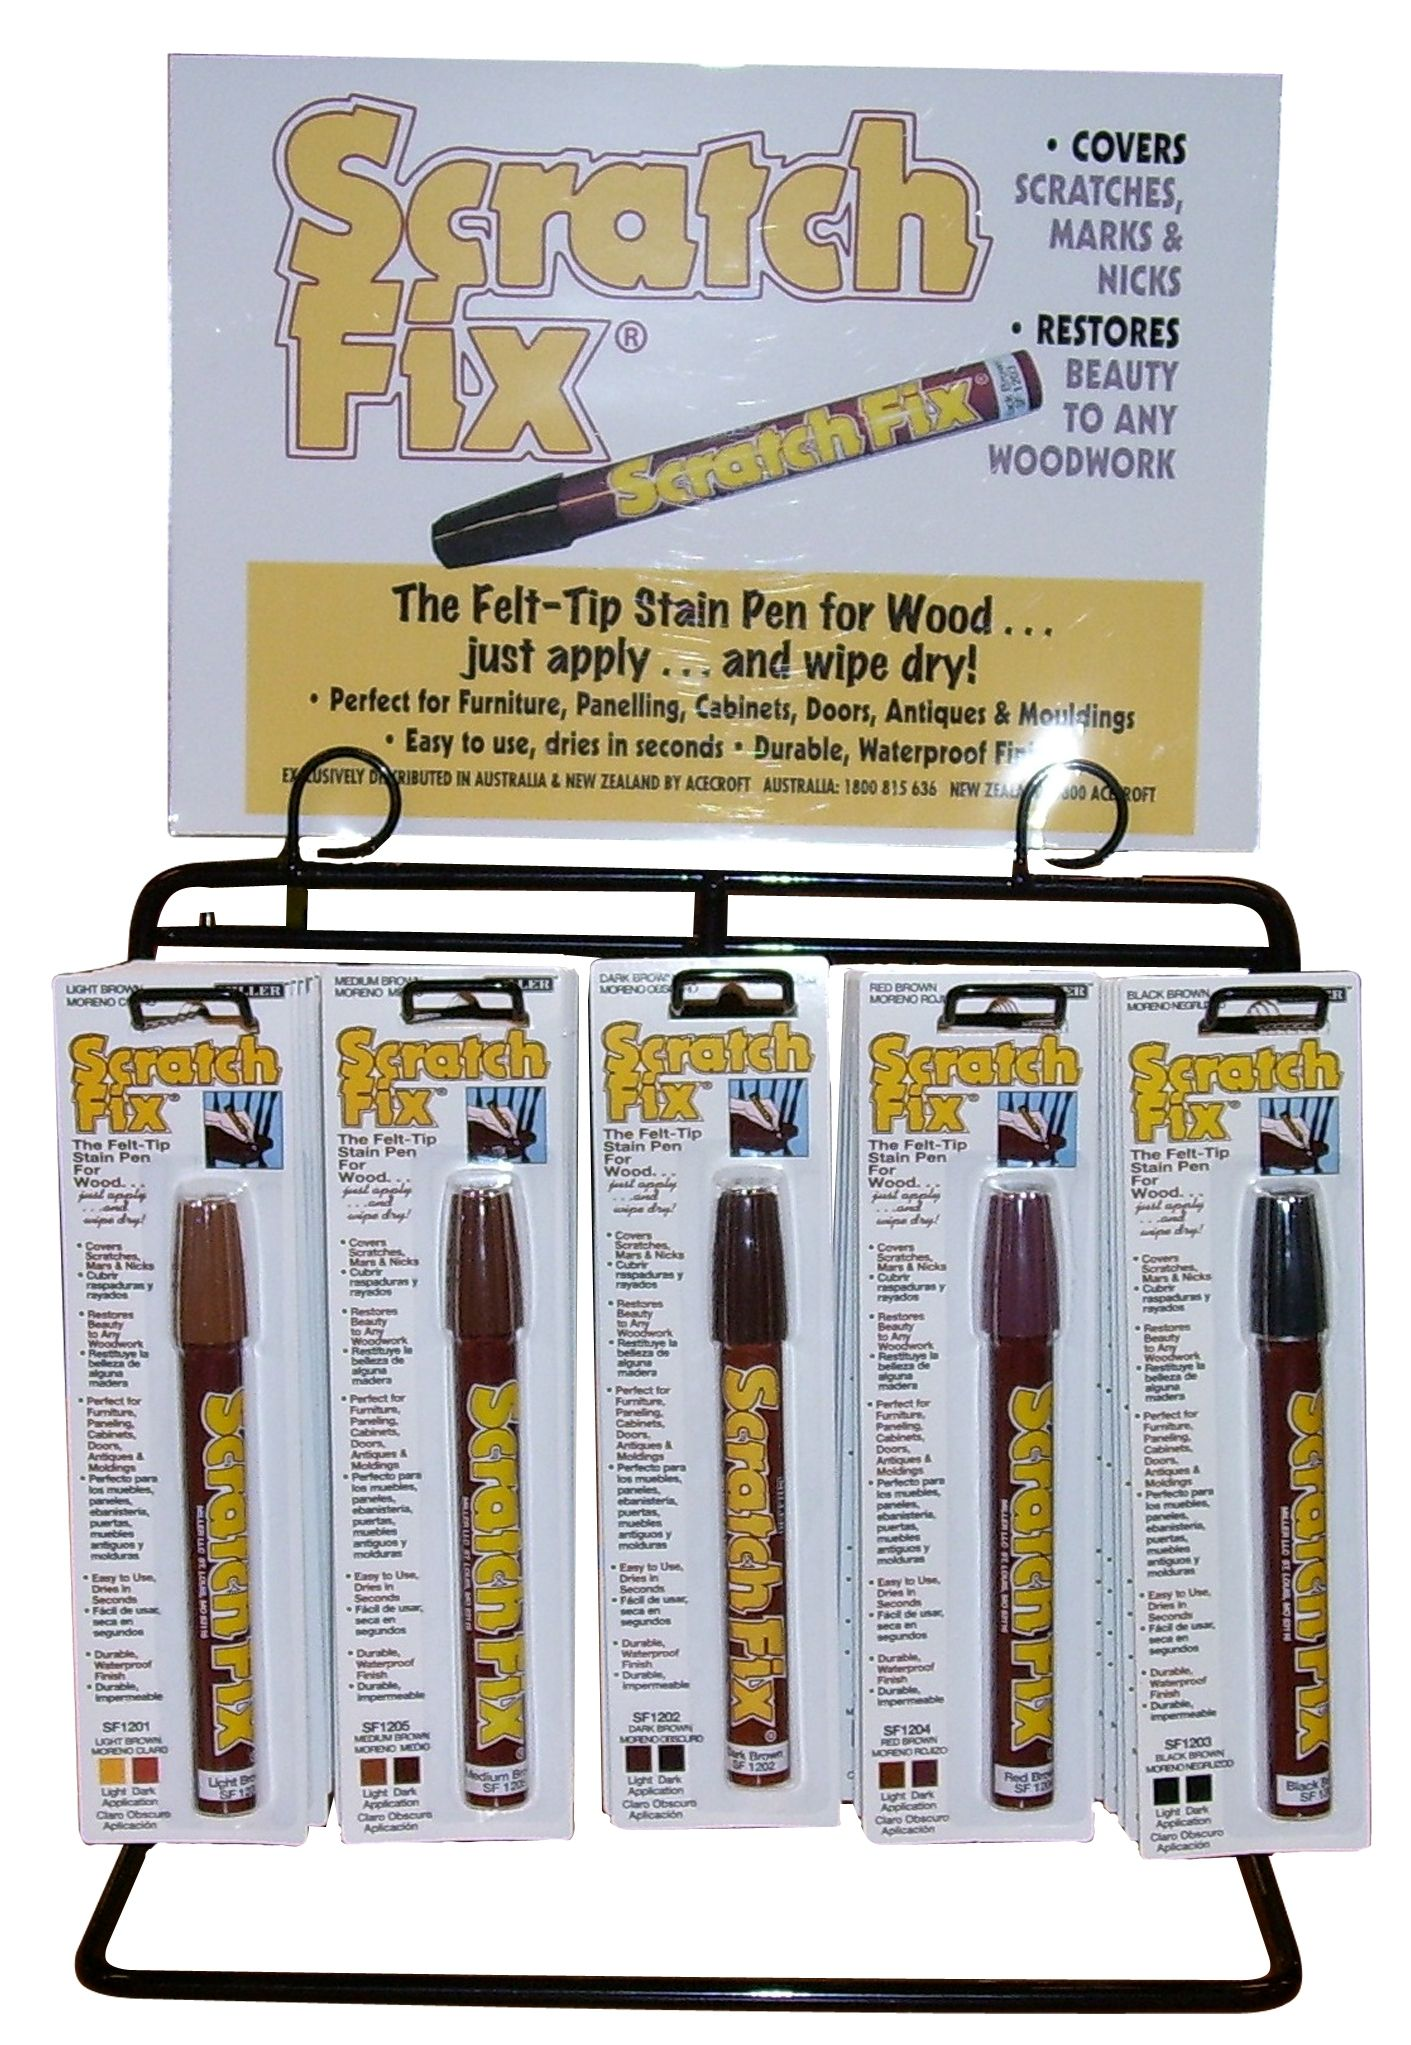 Scratch Fix Pens Are The Perfect Furniture Touch Up Pen For Anyone Wanting To Tidy Up And Do